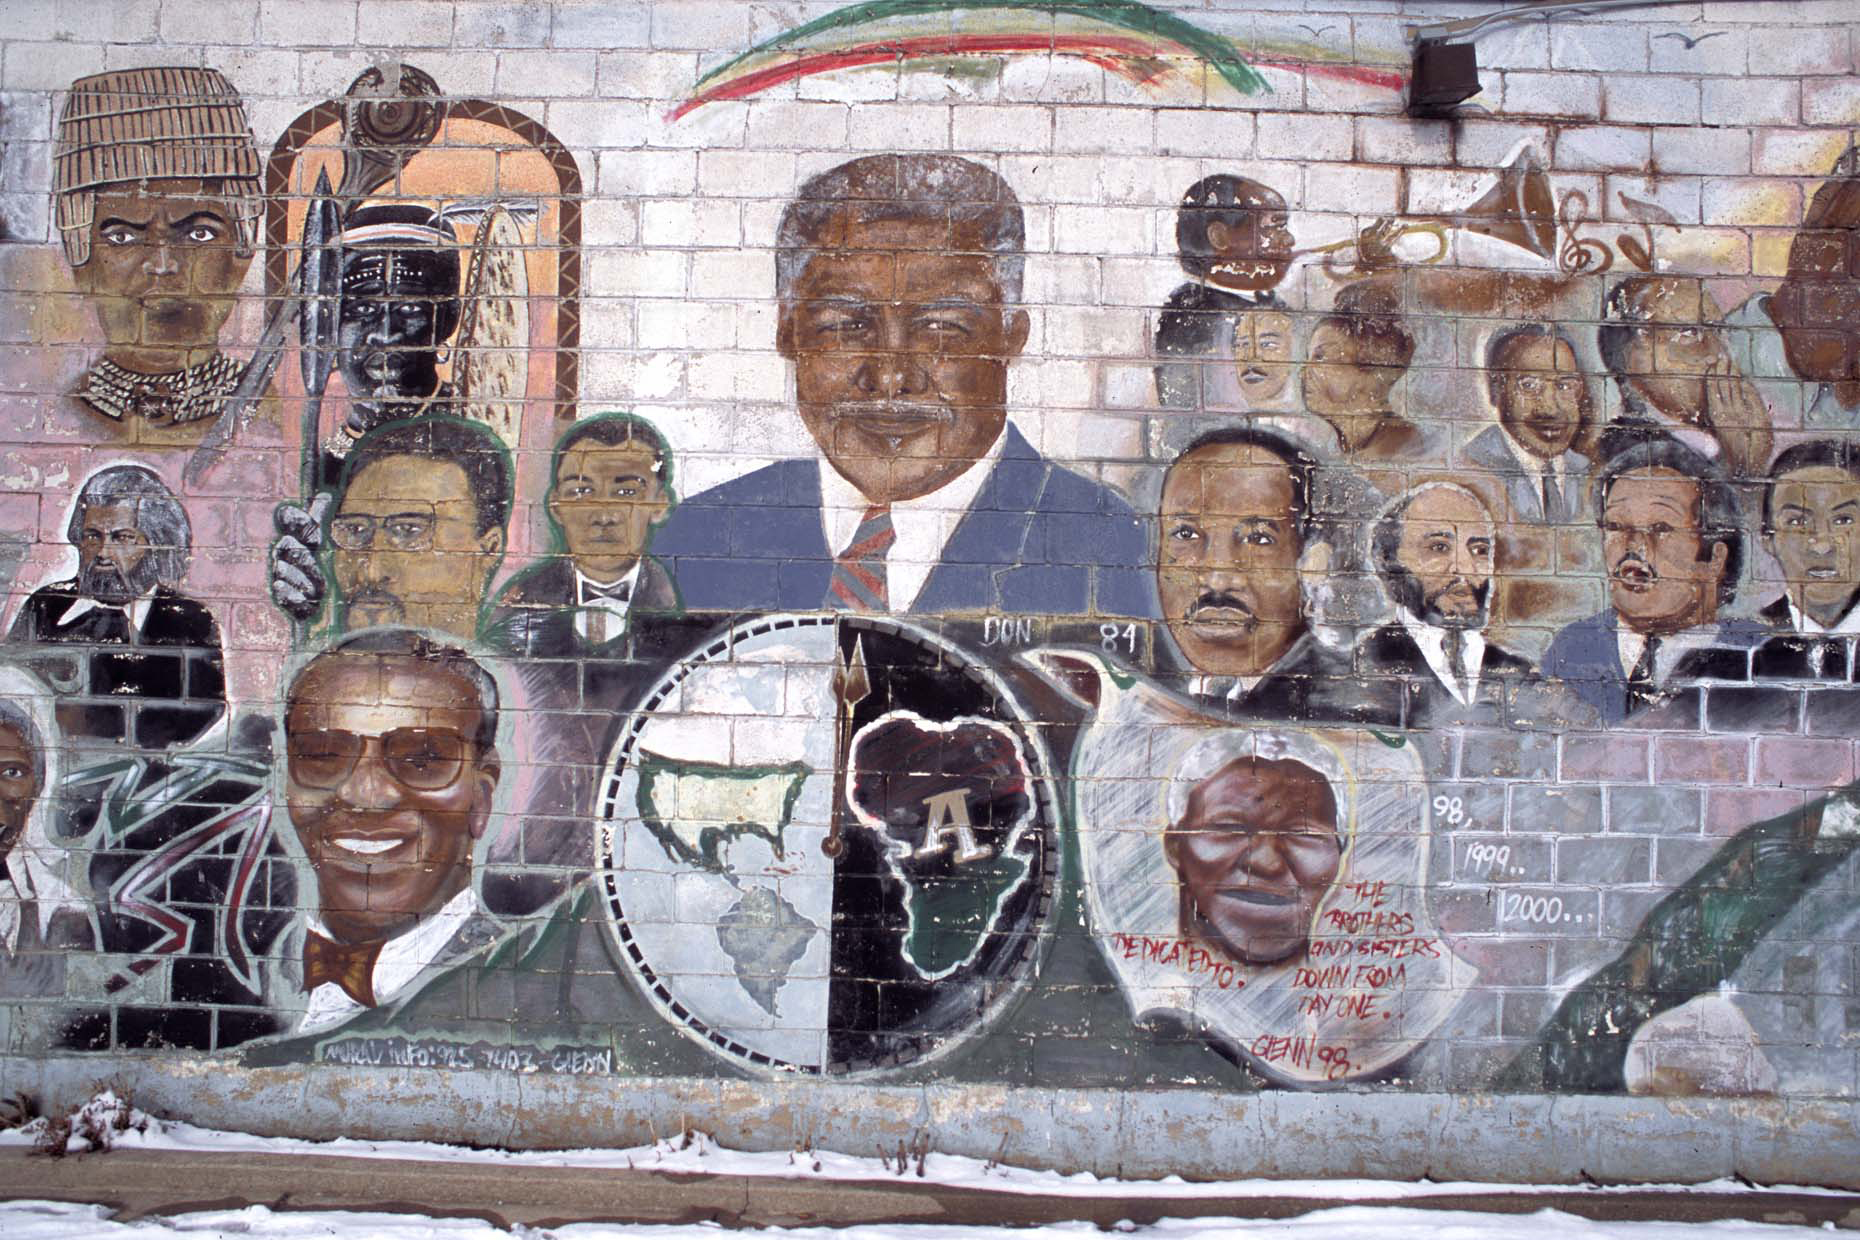 People Of Color, Dedicated To The Brothers And The Sisters From Day One, by Glenn Rock, 1998, W. 100th Street and Halsted, Chicago, 2011